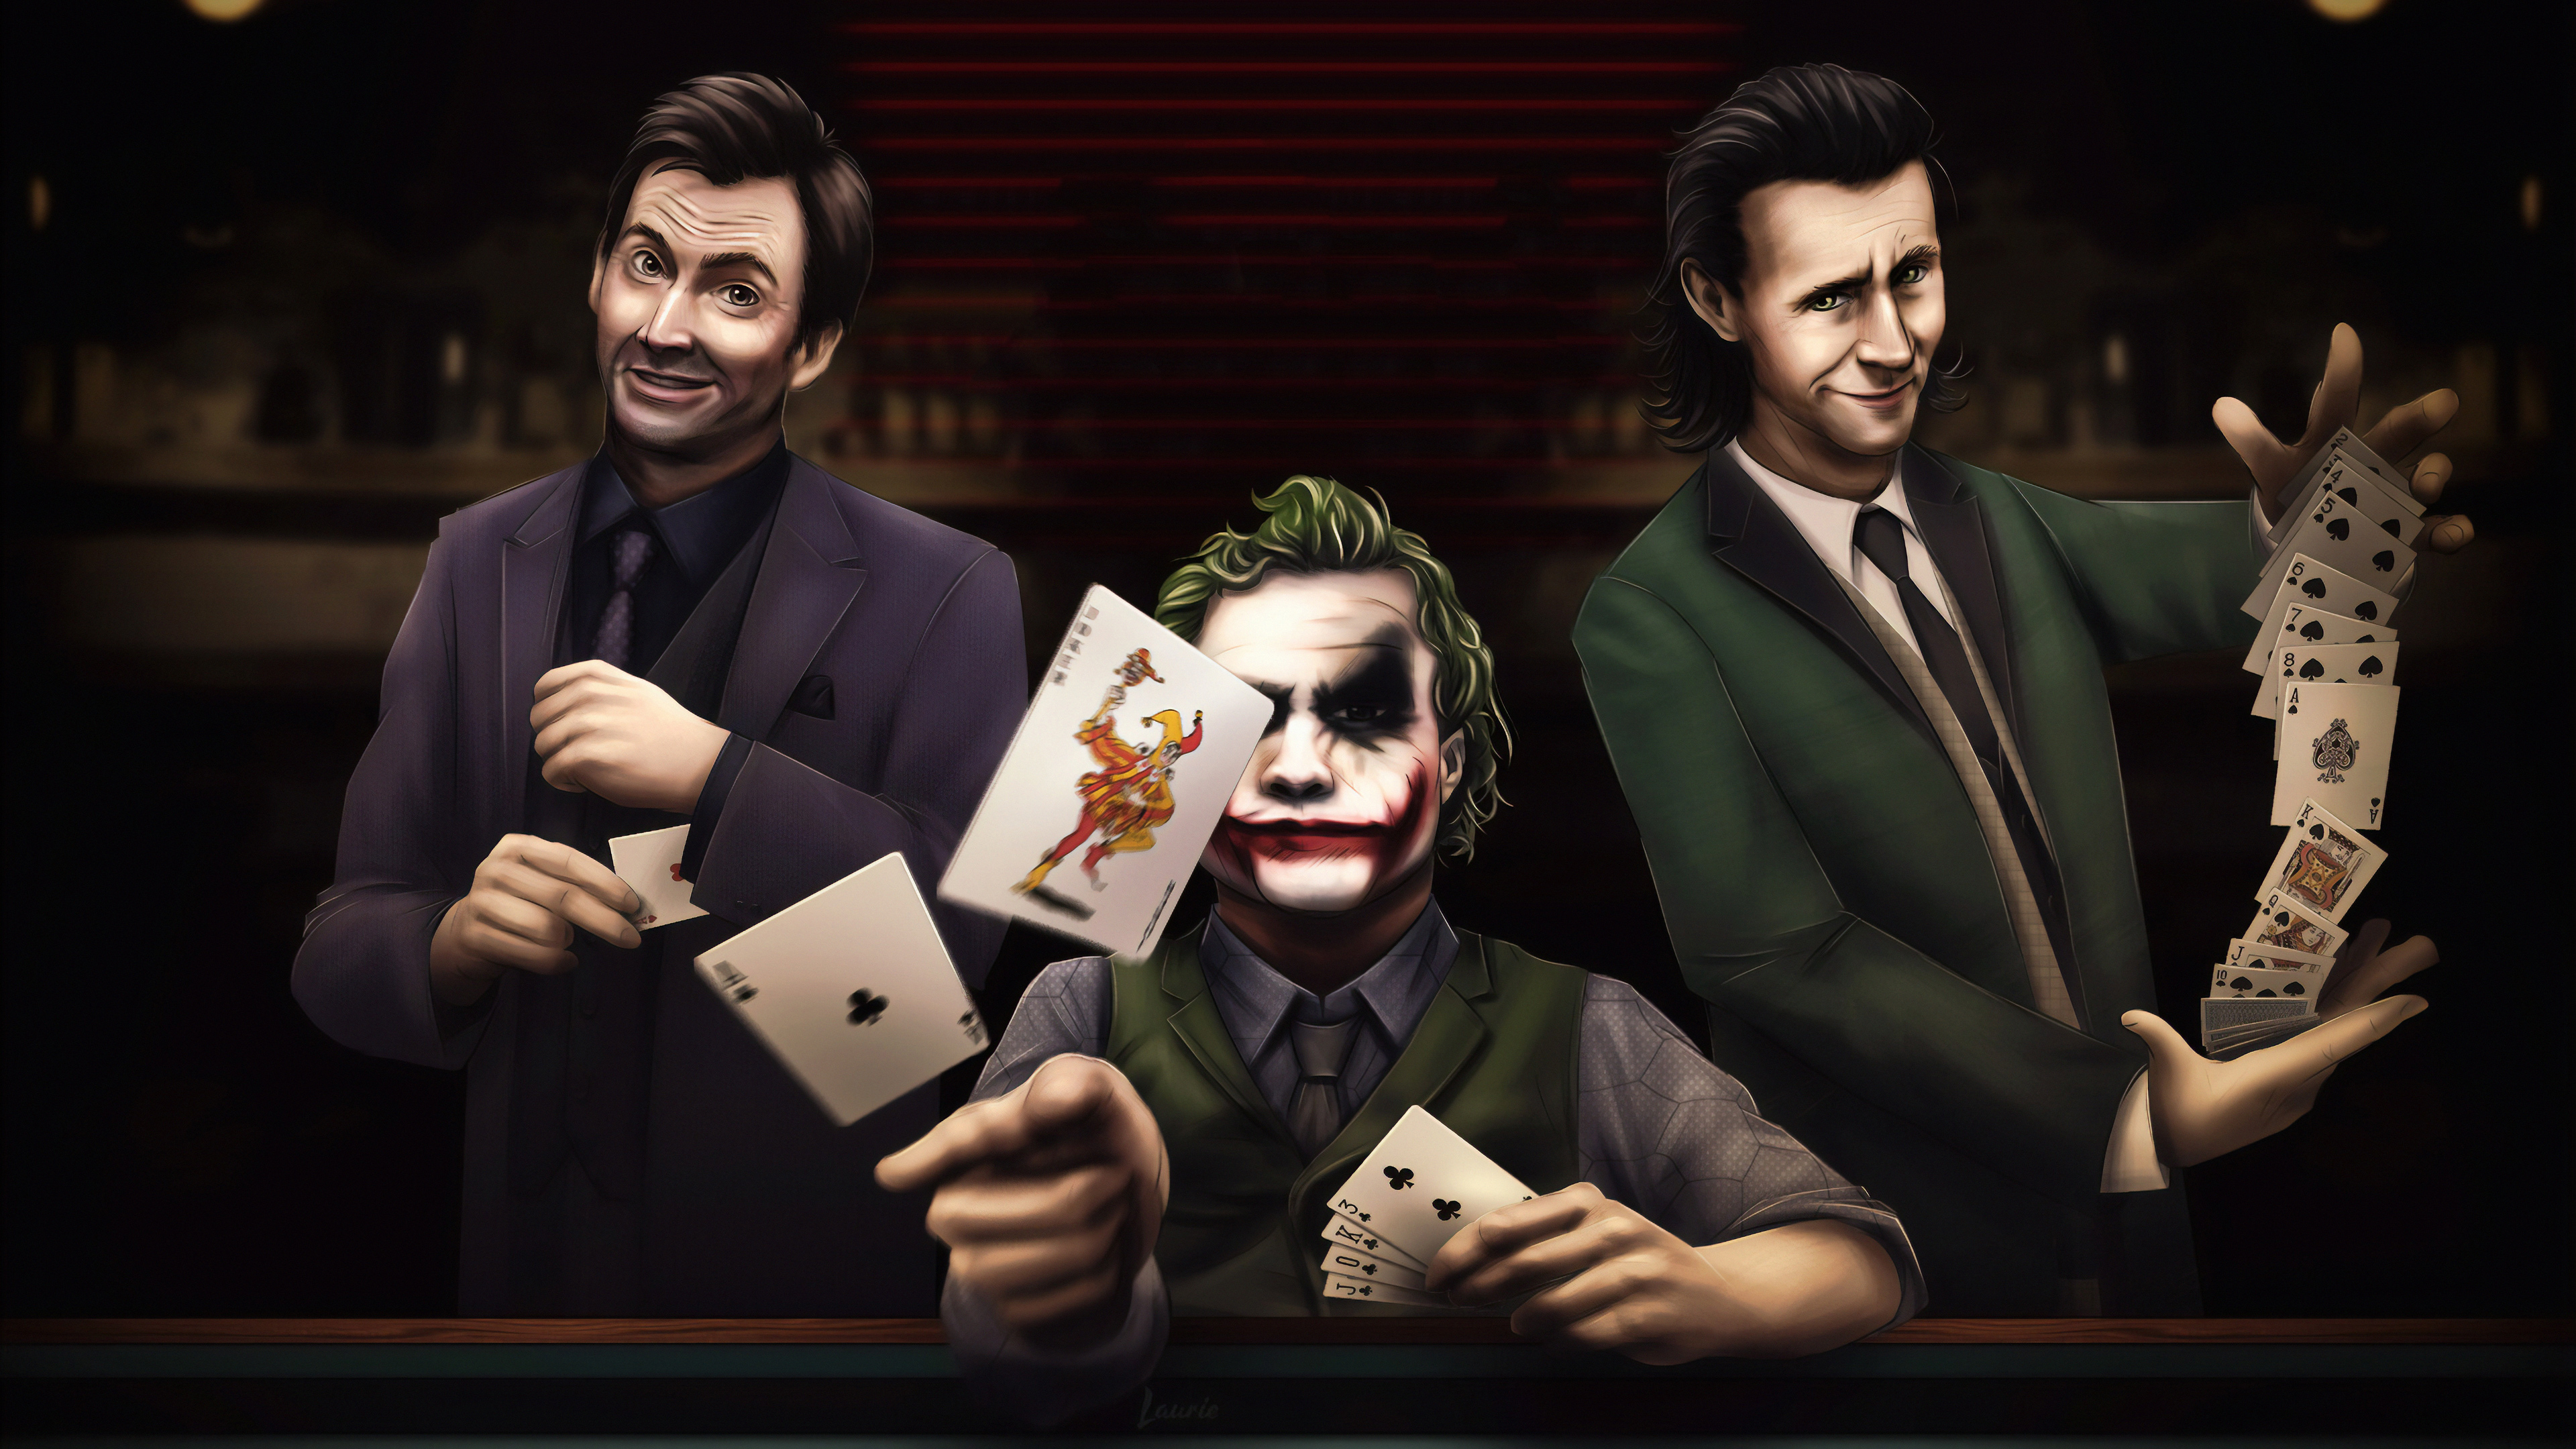 joker the mad one 1572368675 - Joker The Mad One - superheroes wallpapers, joker wallpapers, hd-wallpapers, dc comics wallpapers, artstation wallpapers, 4k-wallpapers